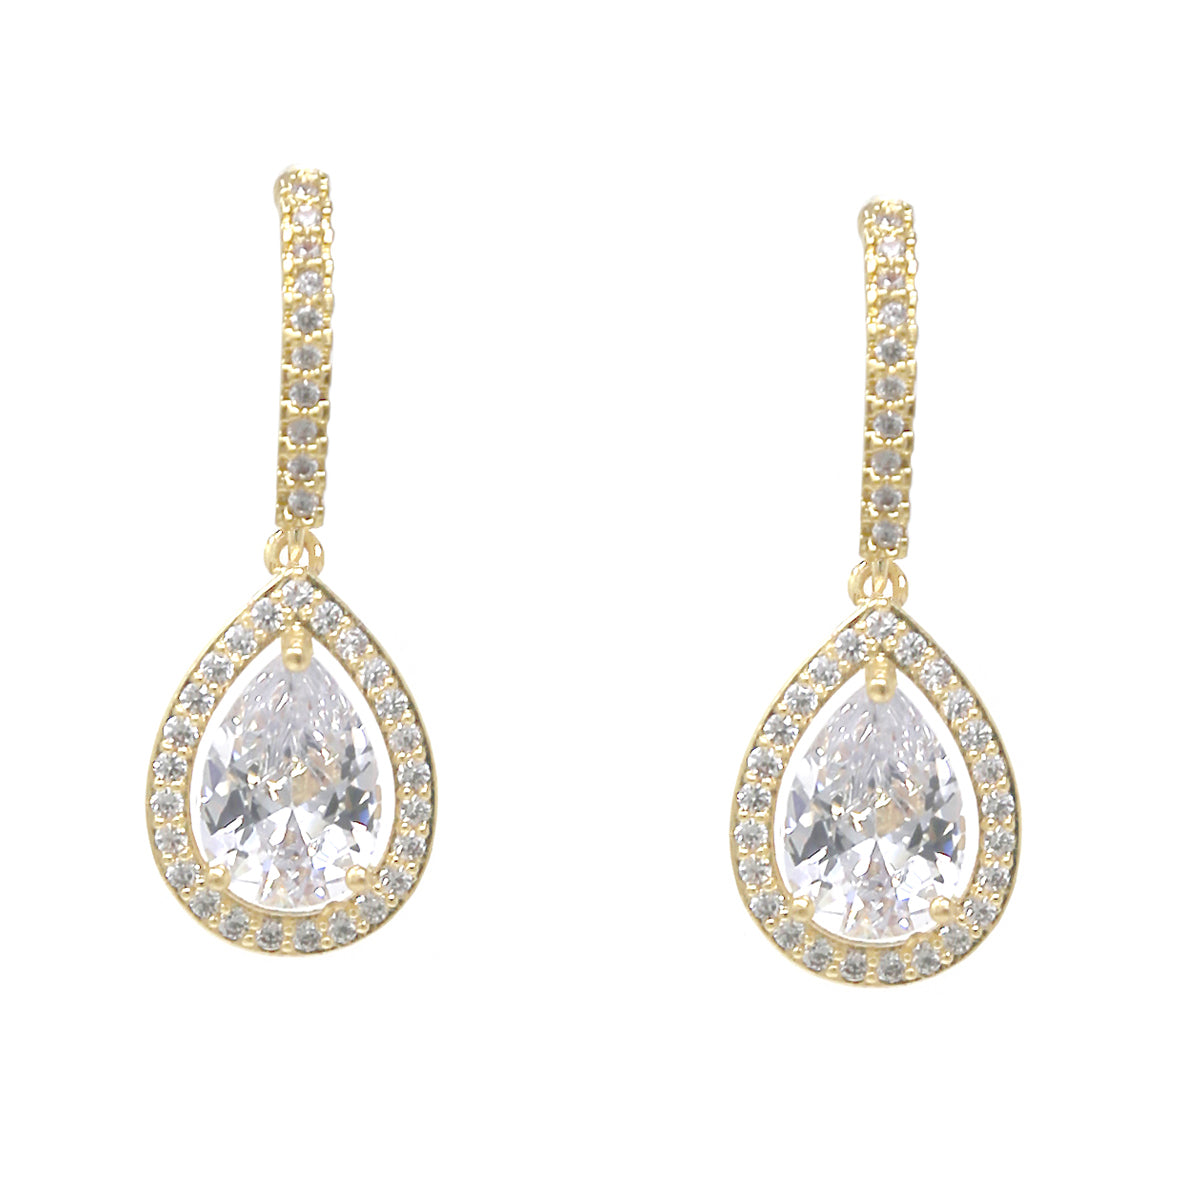 Premium Cubic Zirconia Pave Teardrop Earrings